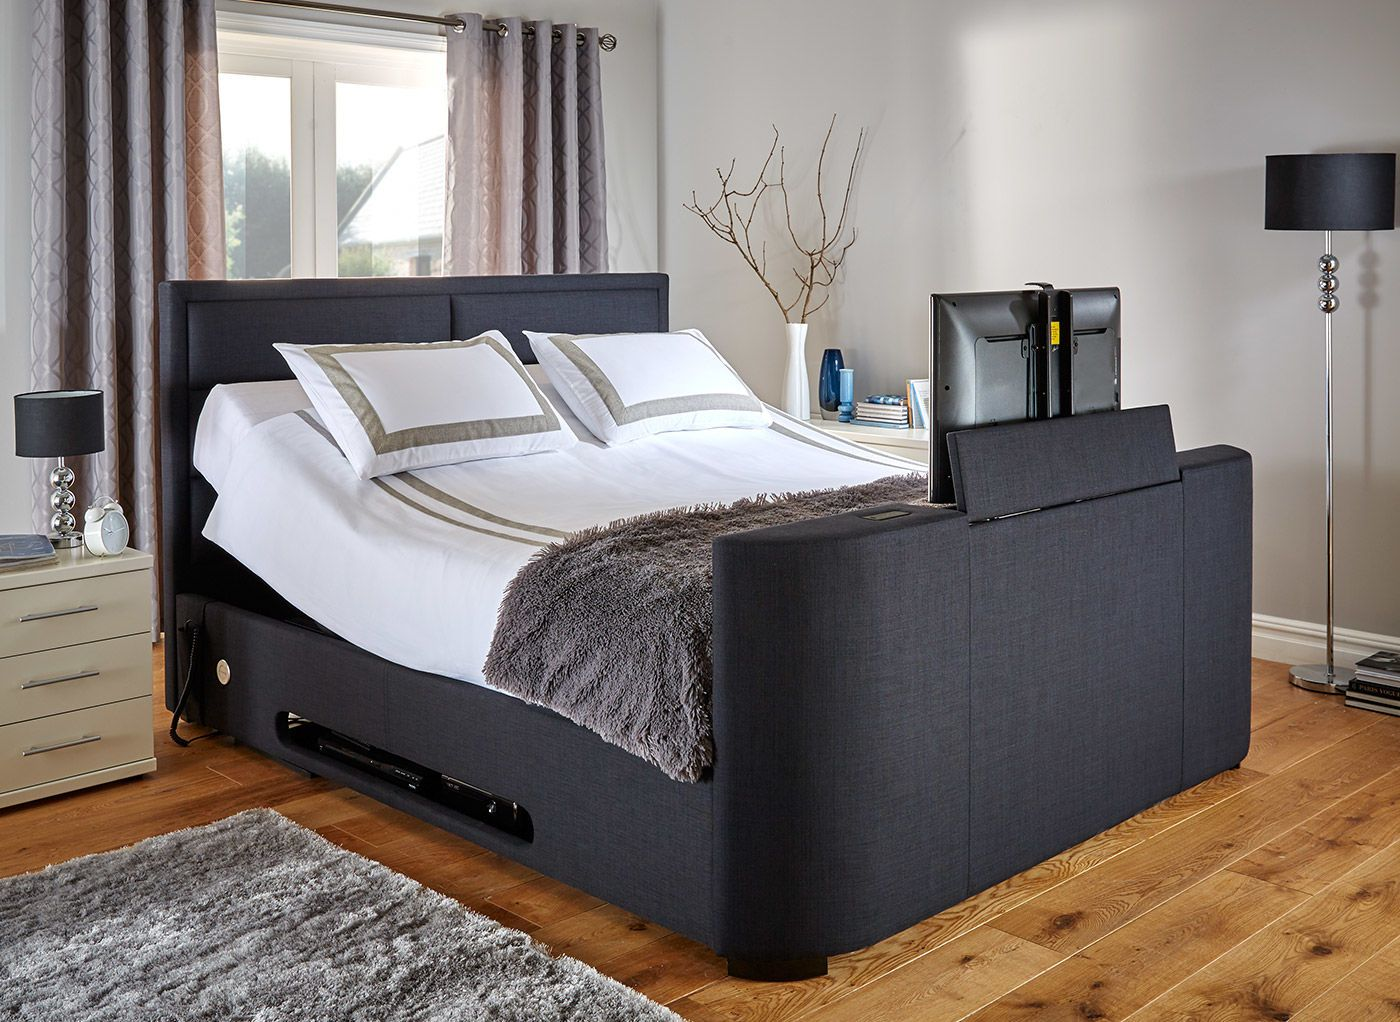 King Size Tv Bed The Truscott Tv Bed Is Both Stylish And Practical Keeping Your Tv